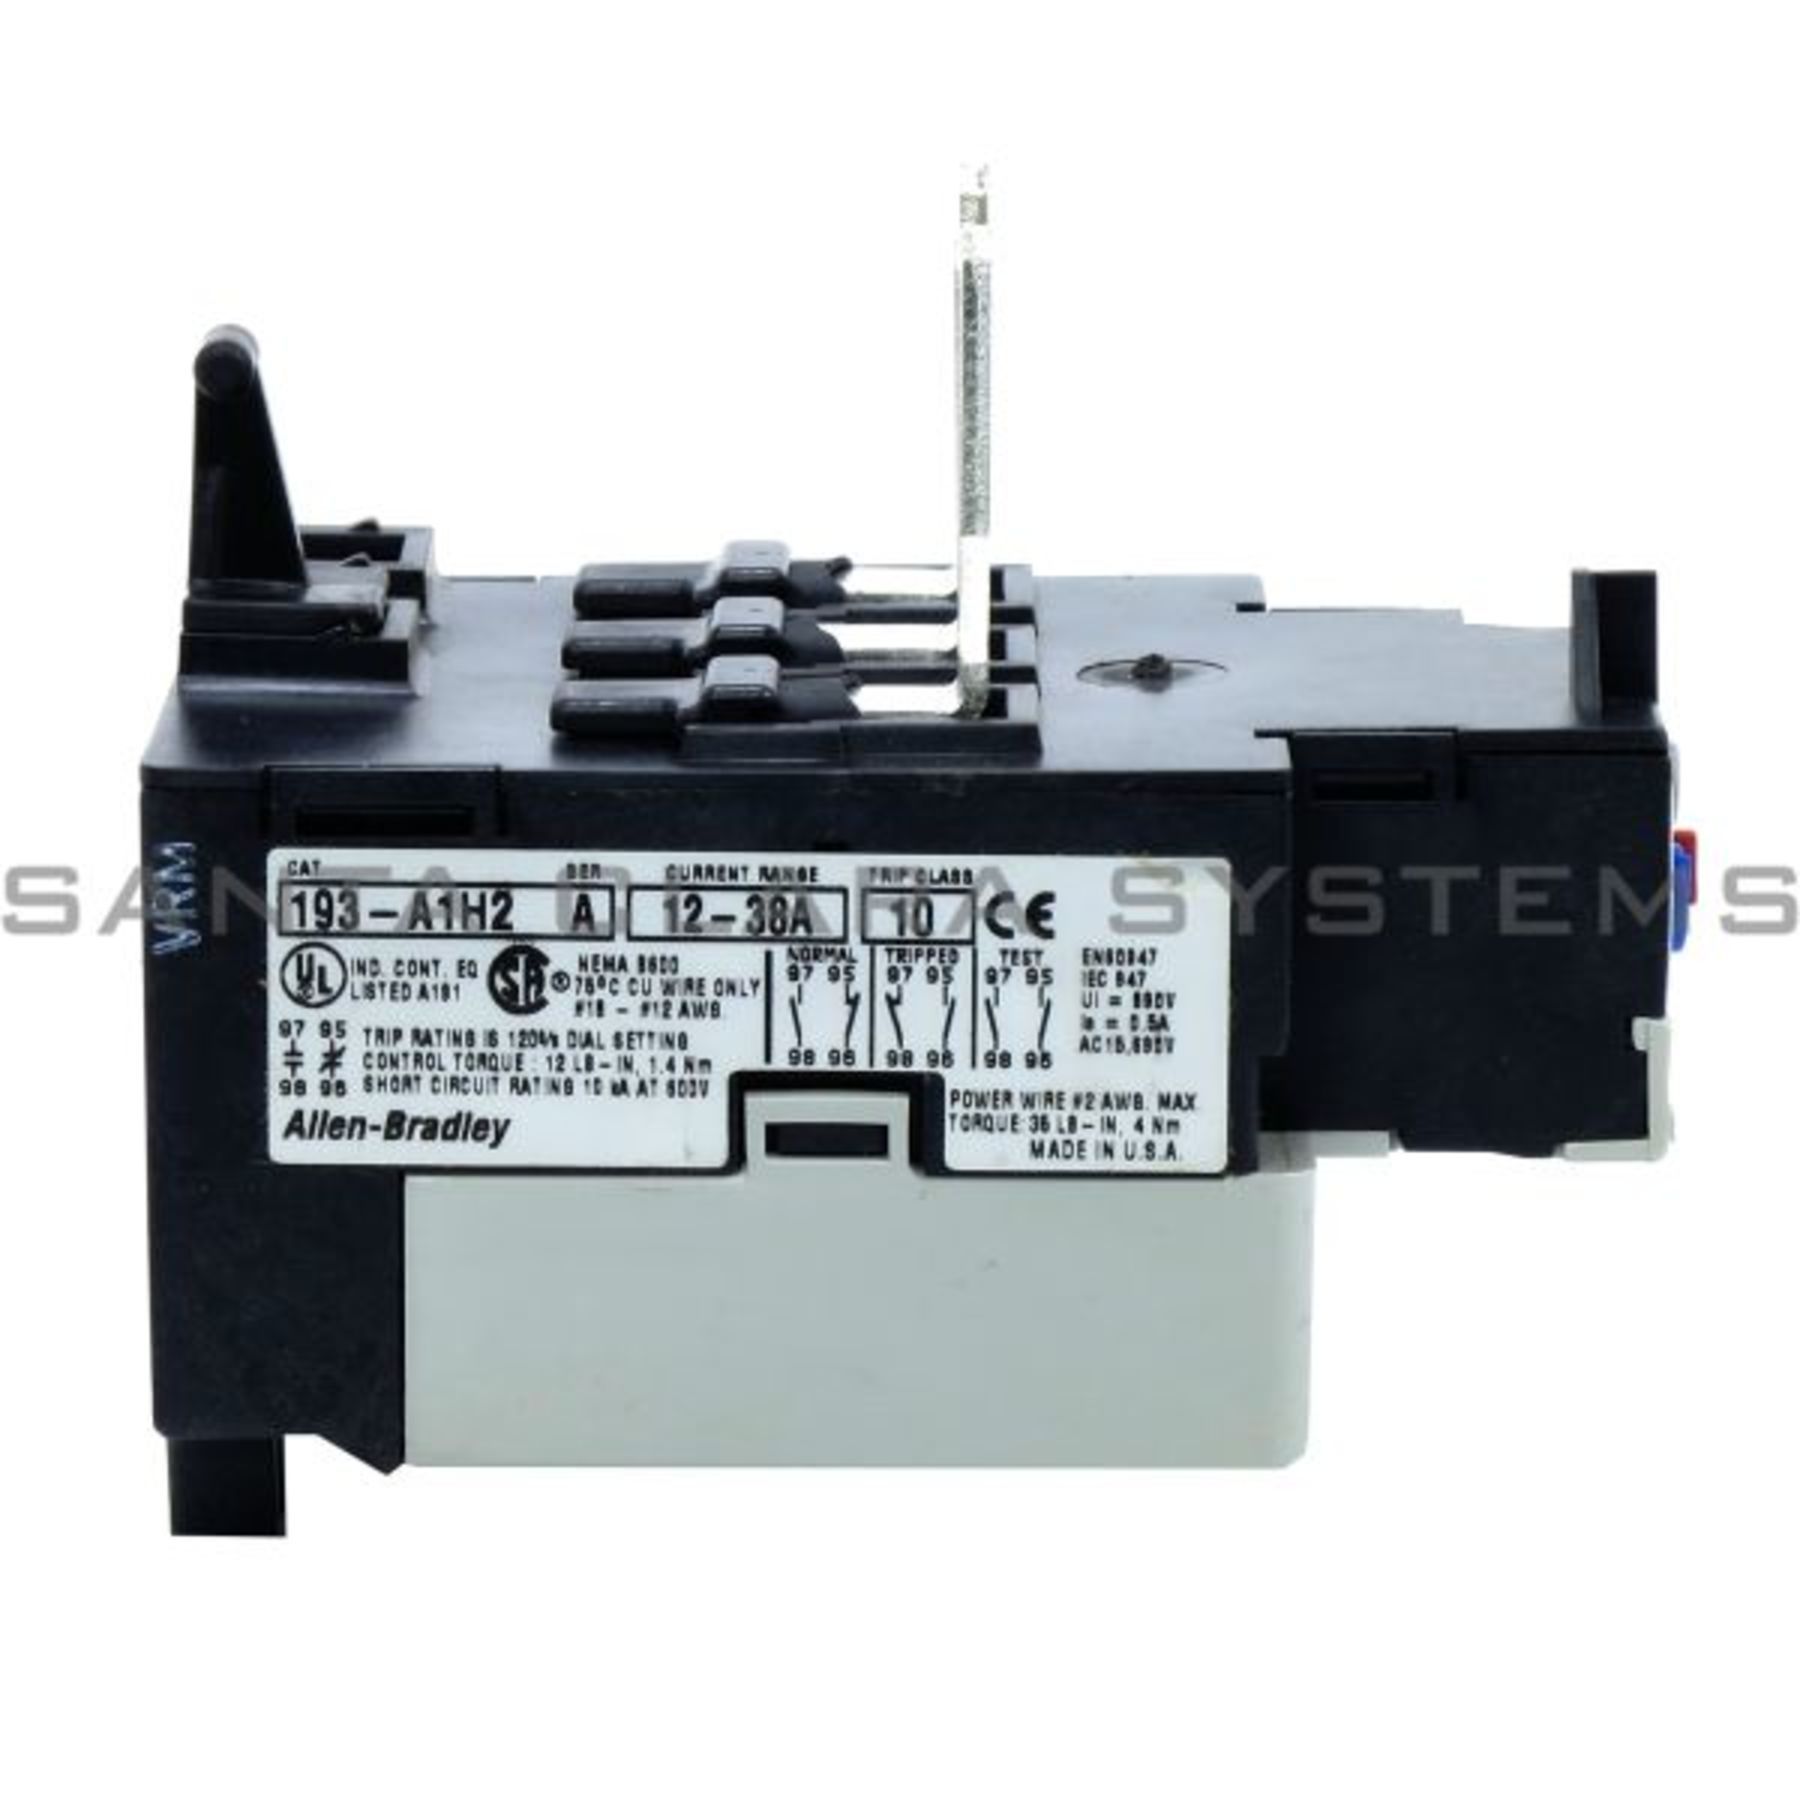 193-A1H2 Allen Bradley In stock and ready to ship - Santa Clara Systems